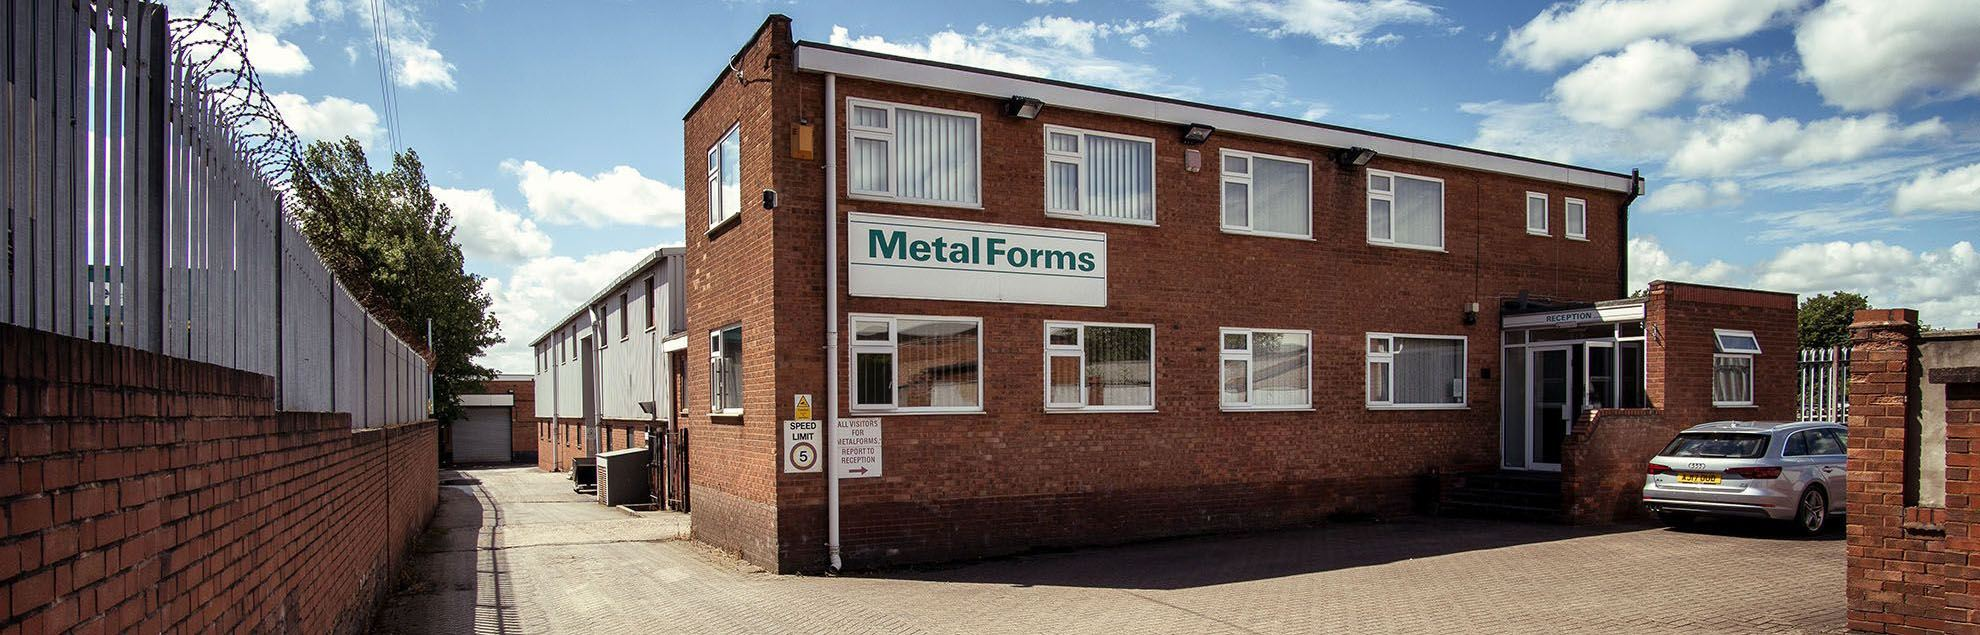 Metal Forms Engineering Ltd